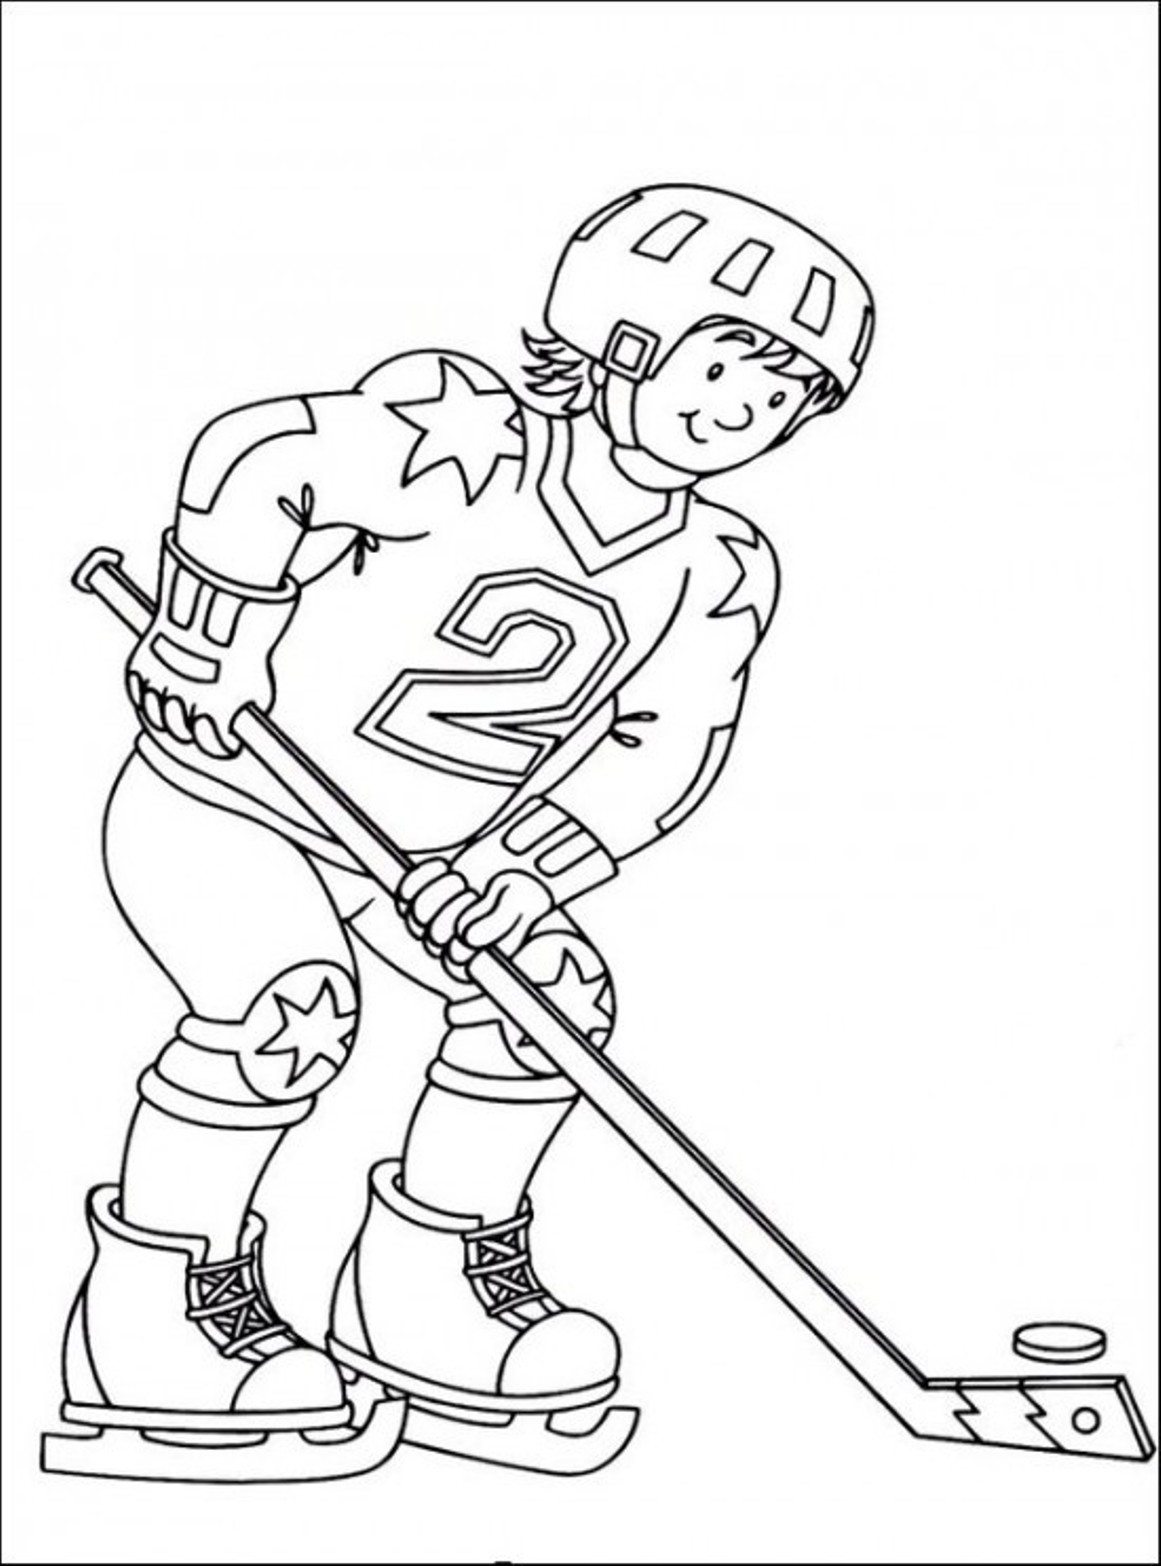 hockey coloring pages printable hockey coloring pages to print hockey